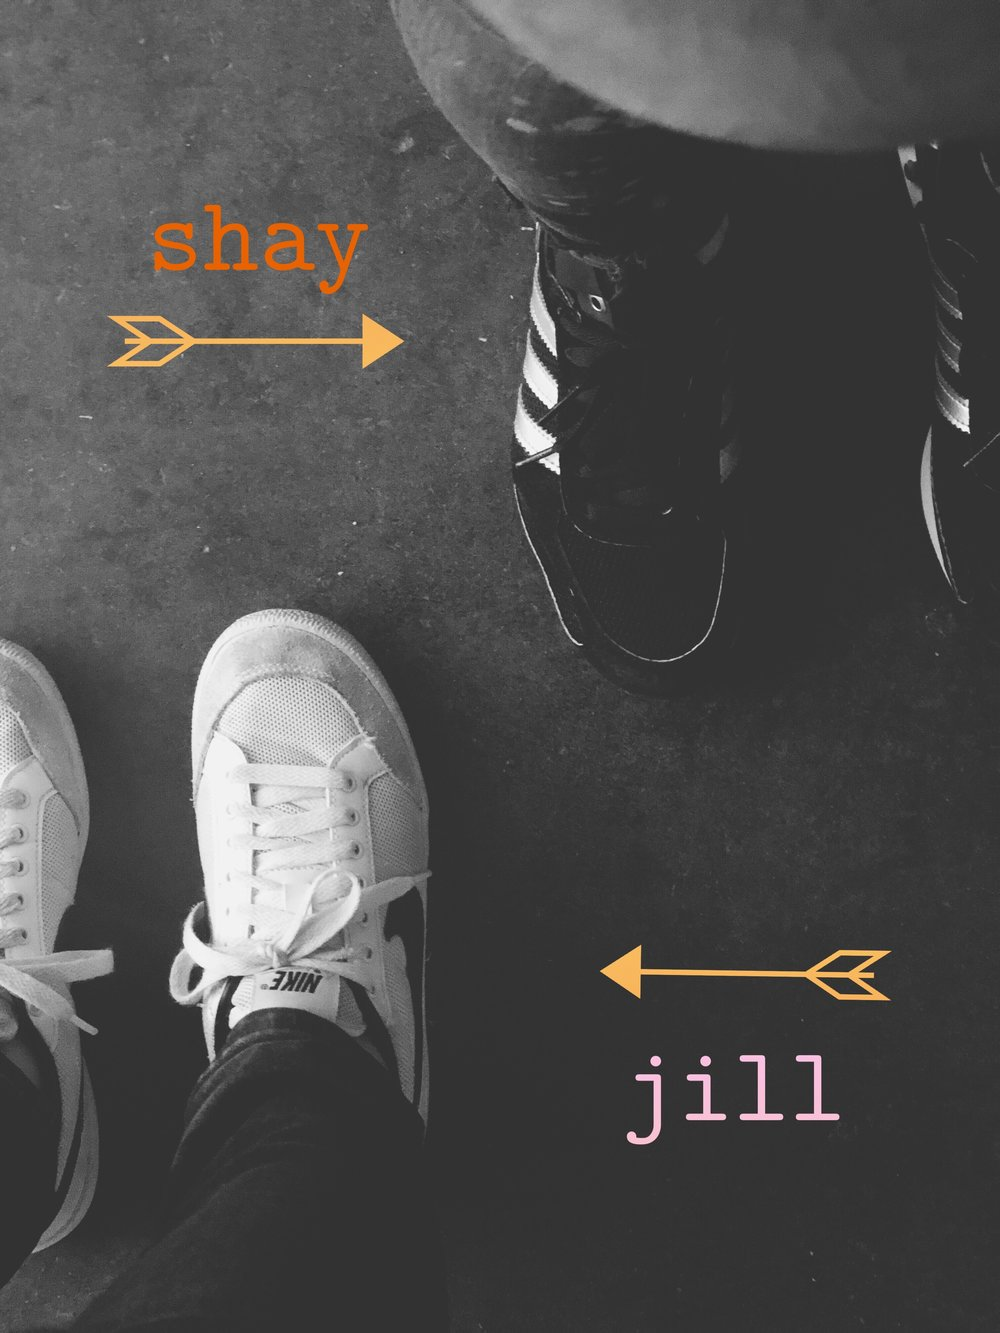 Hi!  We're Shay + Jill.  Friends, co-creatives and happy people.  We believe life should be lived in color, shared with friends + family and in the power of creativity to bring joy.